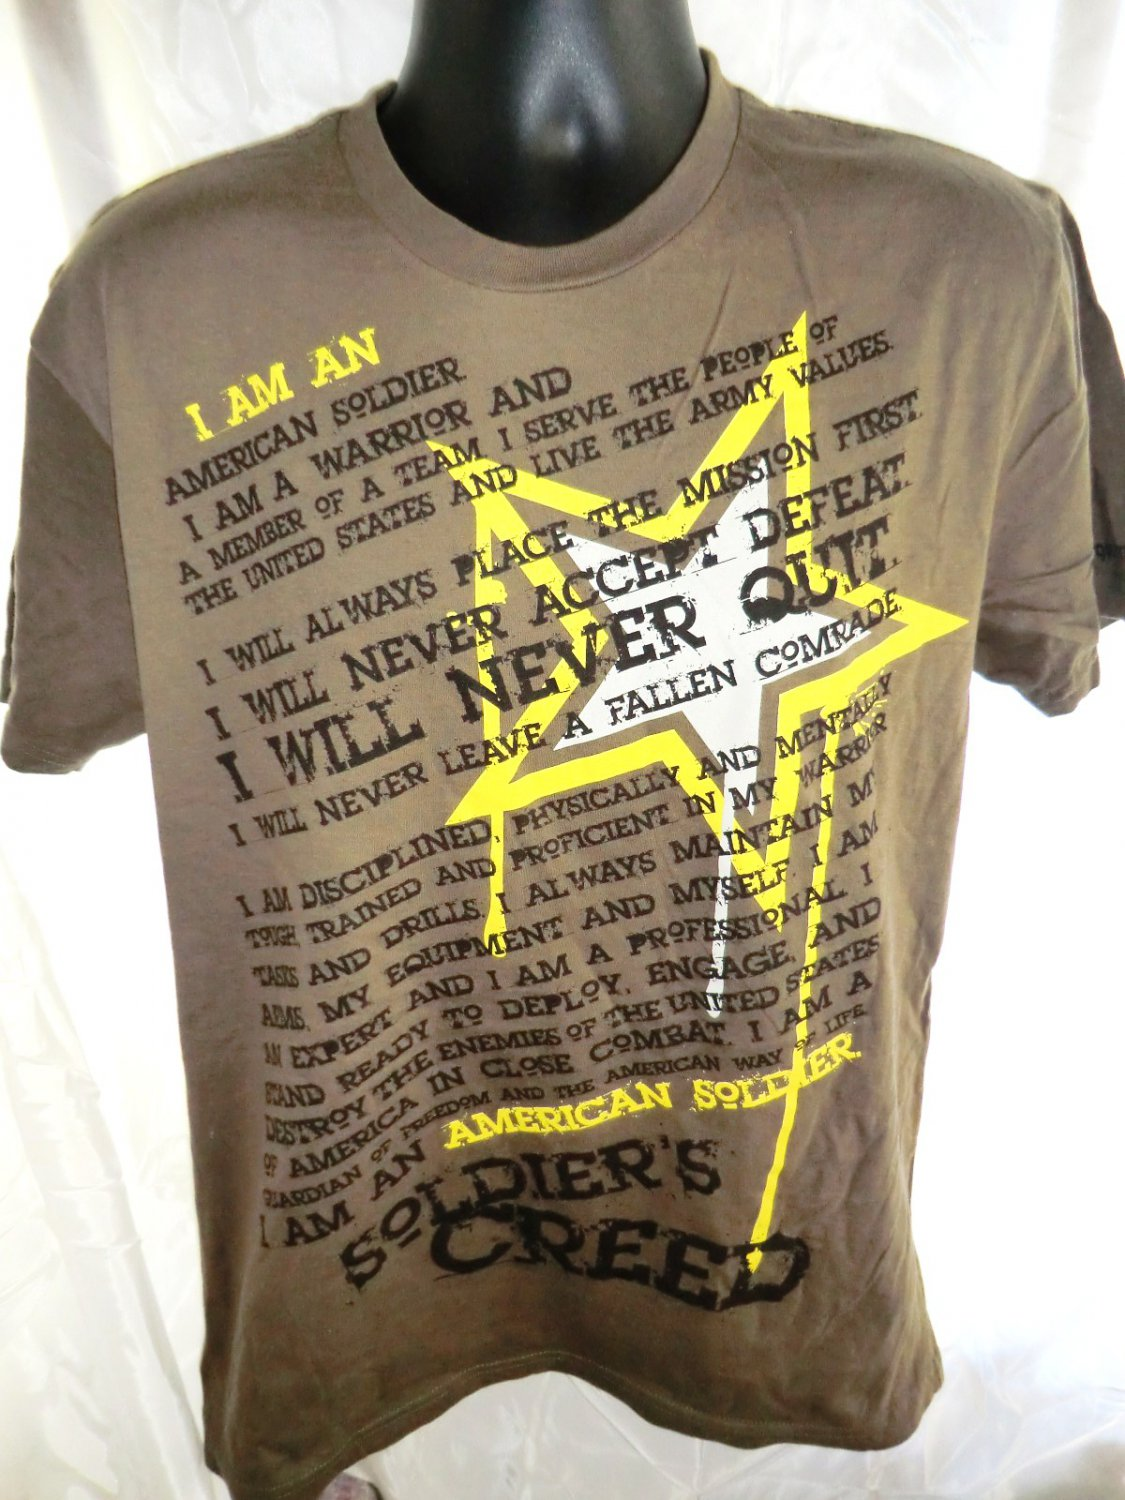 Sold Soldiers Creed Us Army T Shirt Size Medium Large